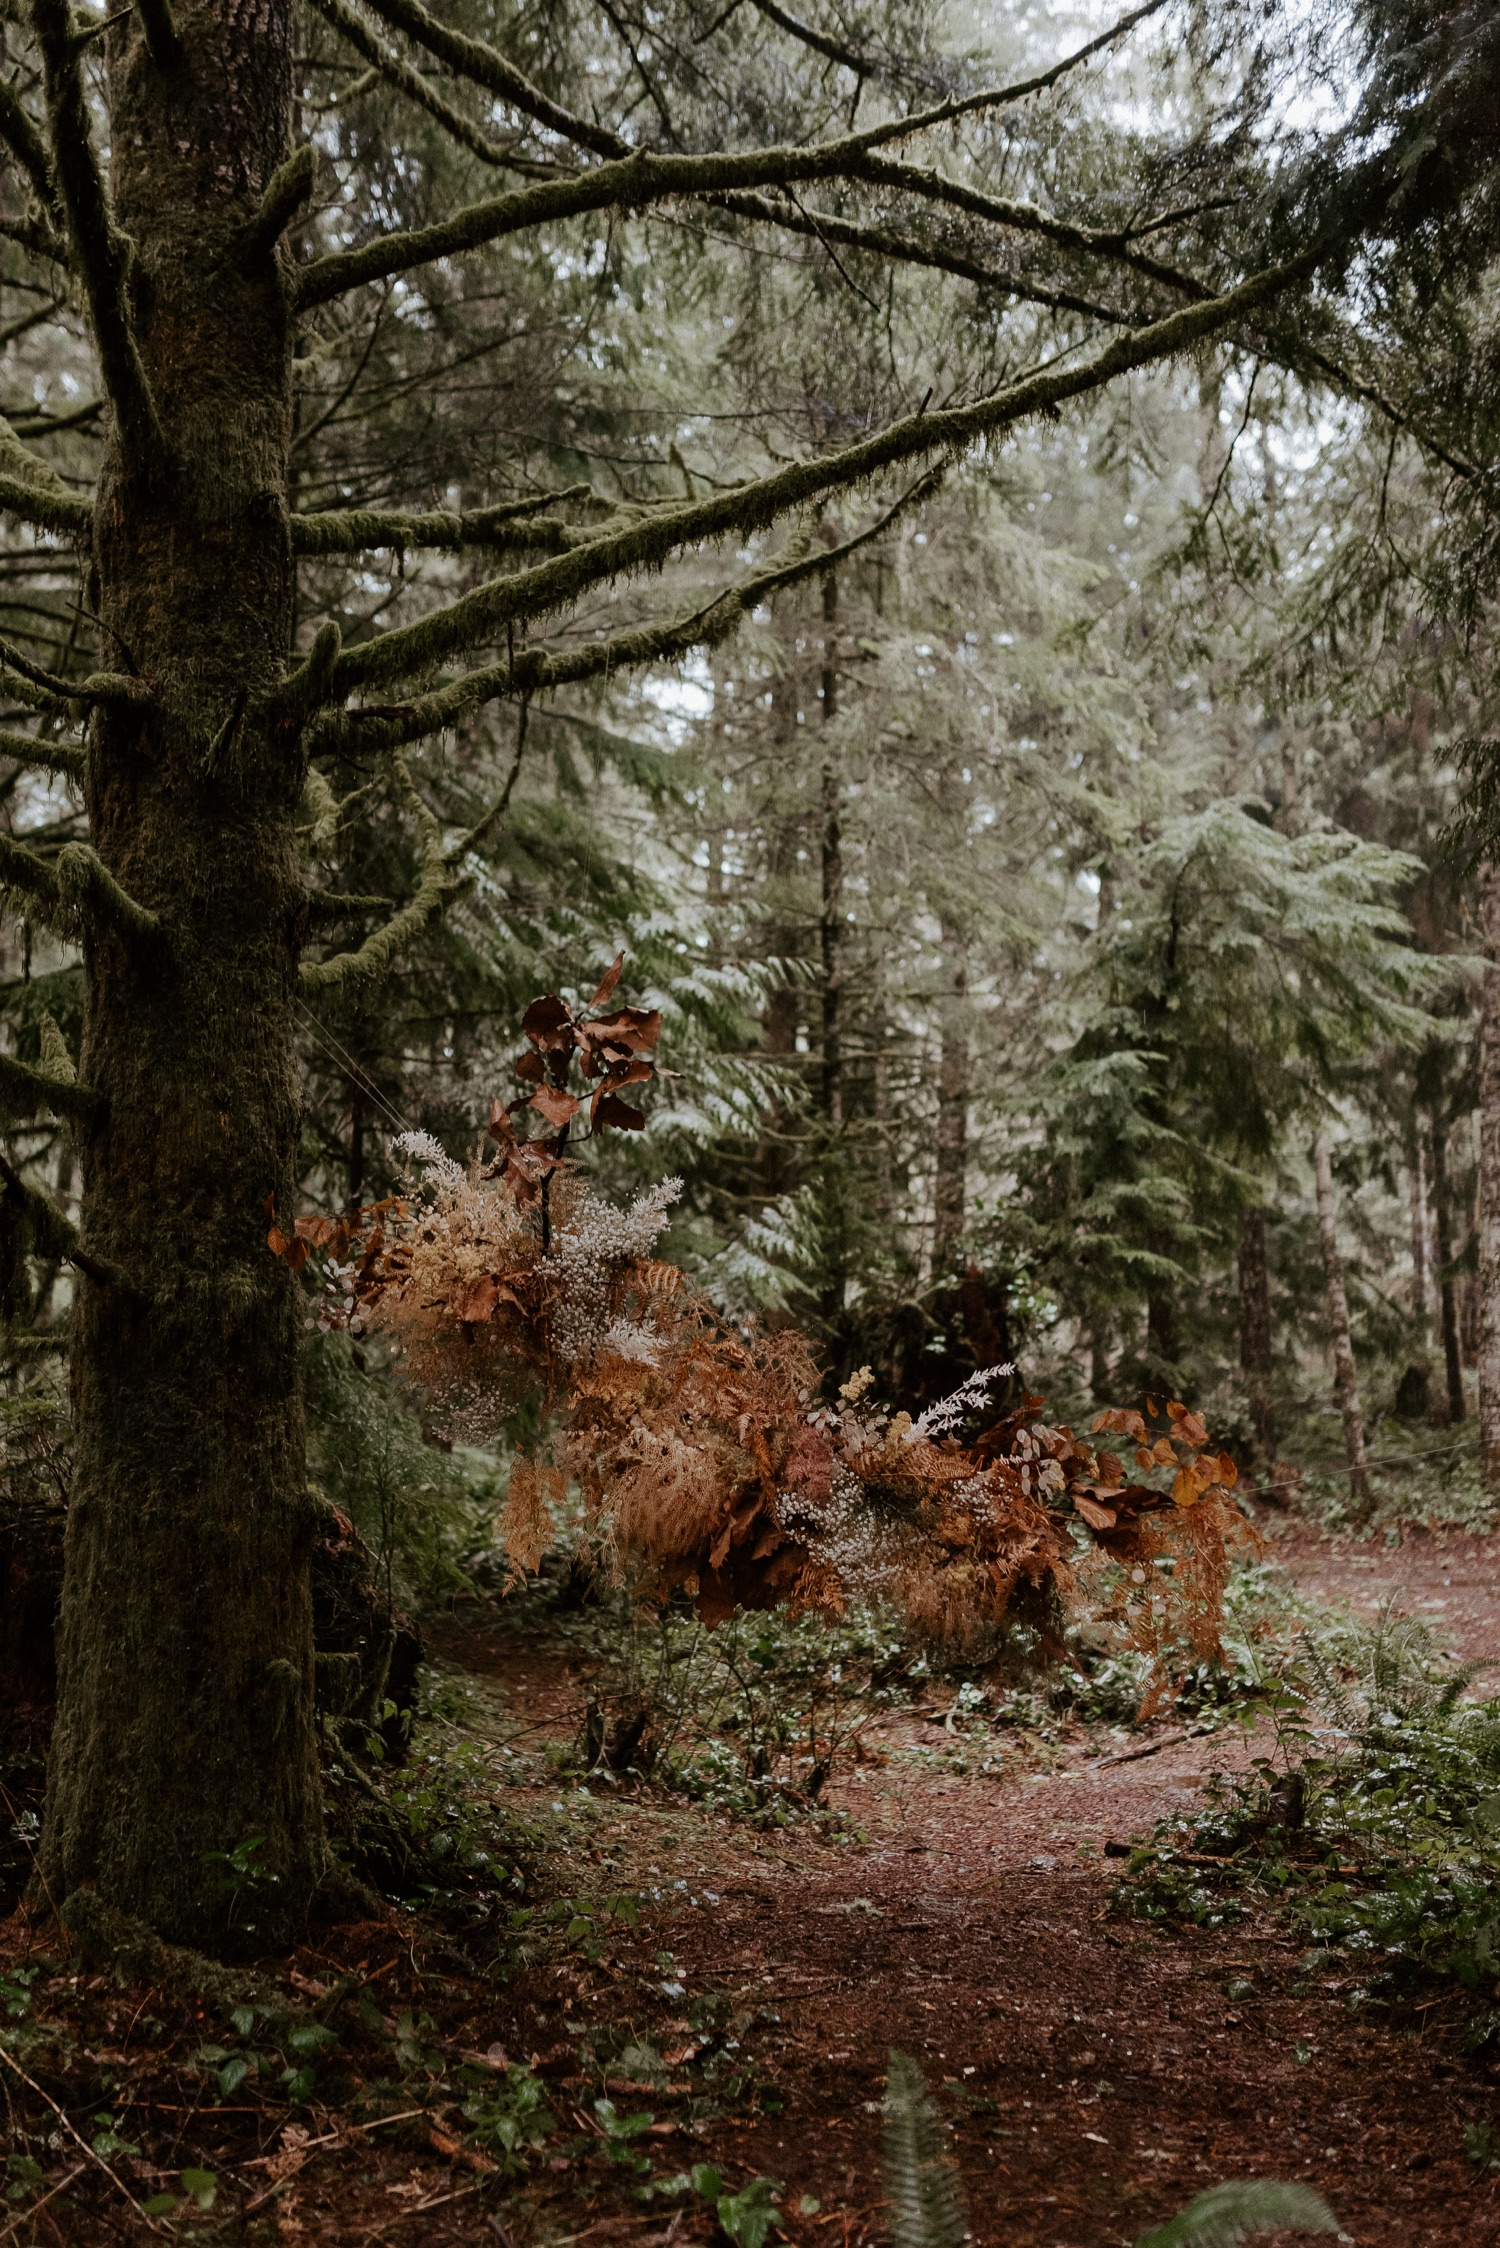 The Woodlands House Sandy Oregon Elopement Portland Elopement Photographer PNW Adventurous Elopement Anais Possamai Photography 011